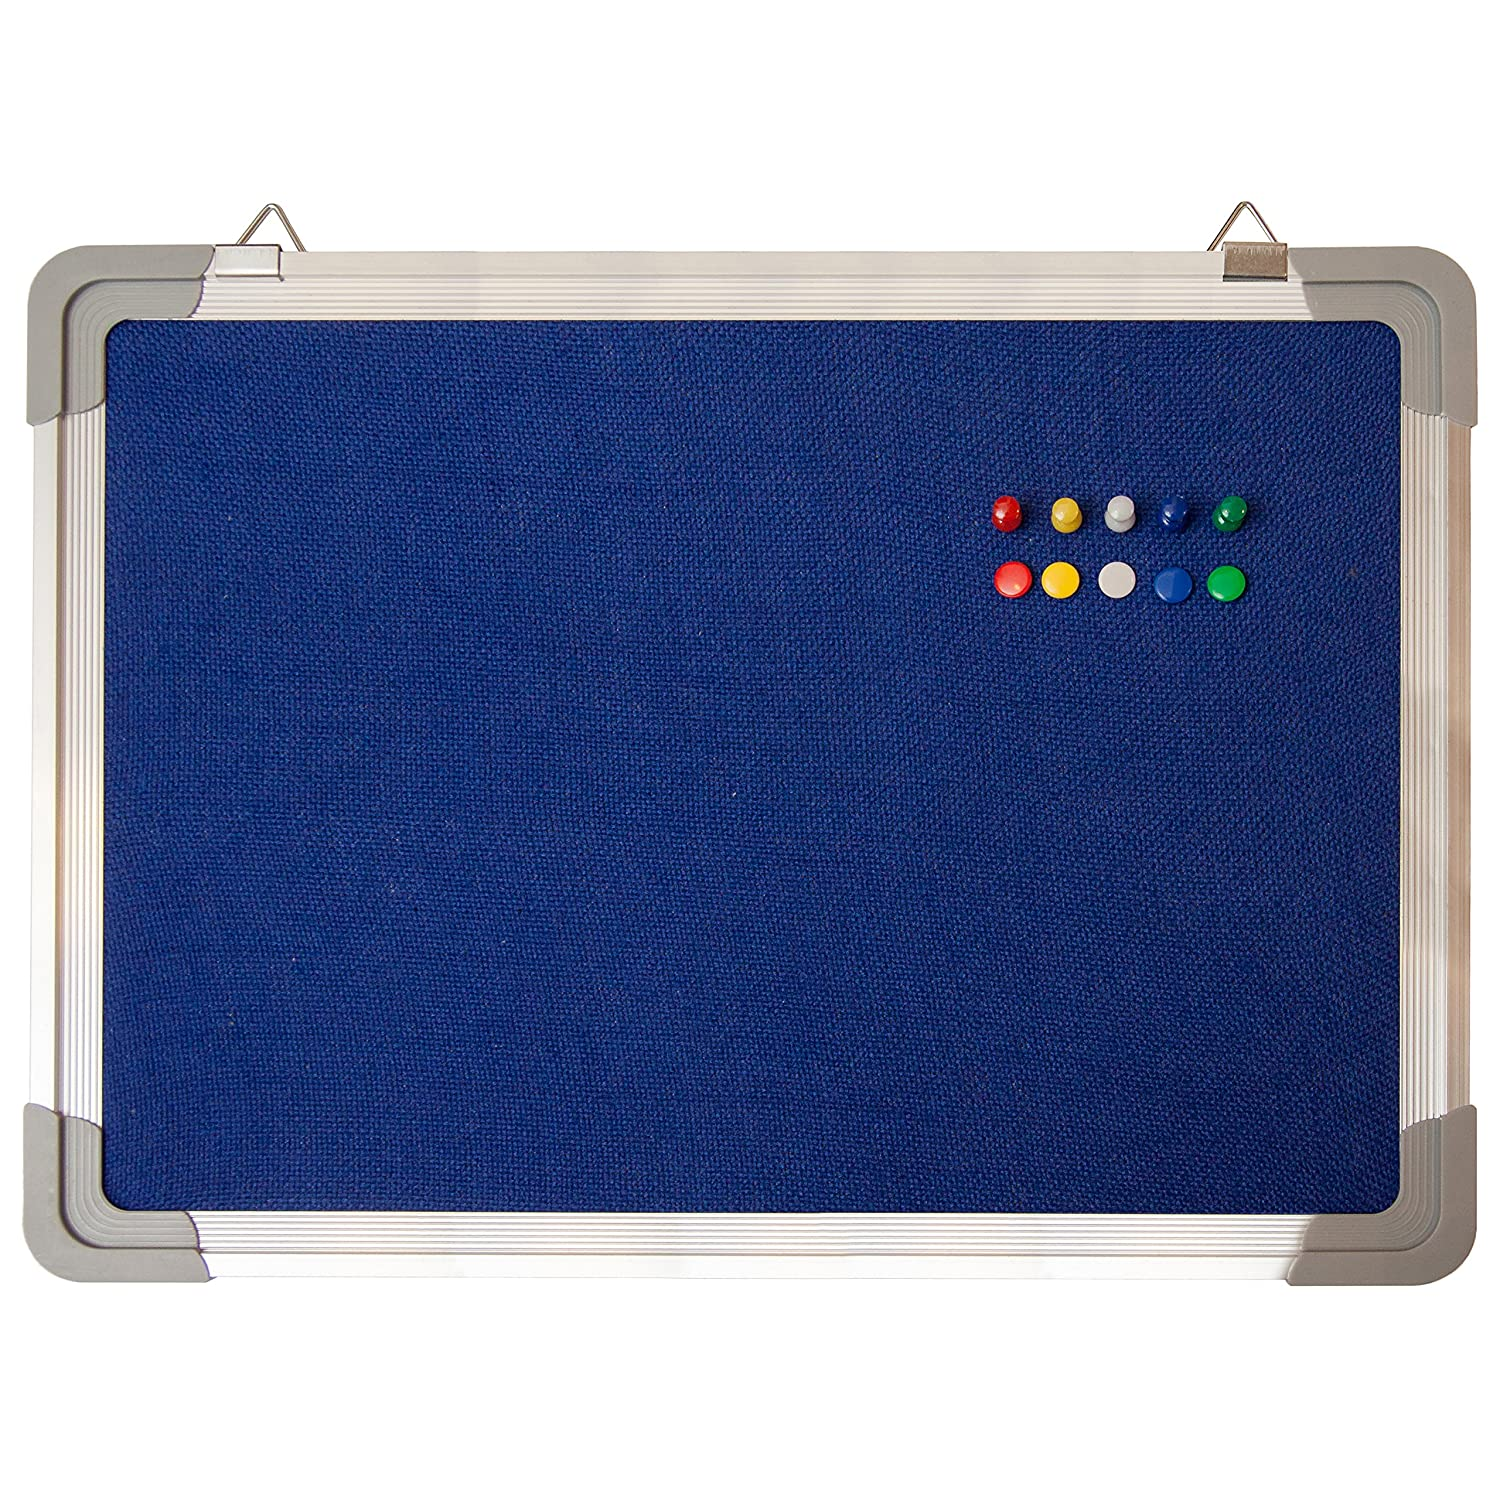 Bulletin Board Set - Cork Board 24 x 18 + 10 Color Pins - Small Wall Hanging Tack Message Memo Picture Board for Home Office School Cubicle - Presentation, Display and Planning (Cork 24x18) Navy Penguin Bulletin Board NP37795388